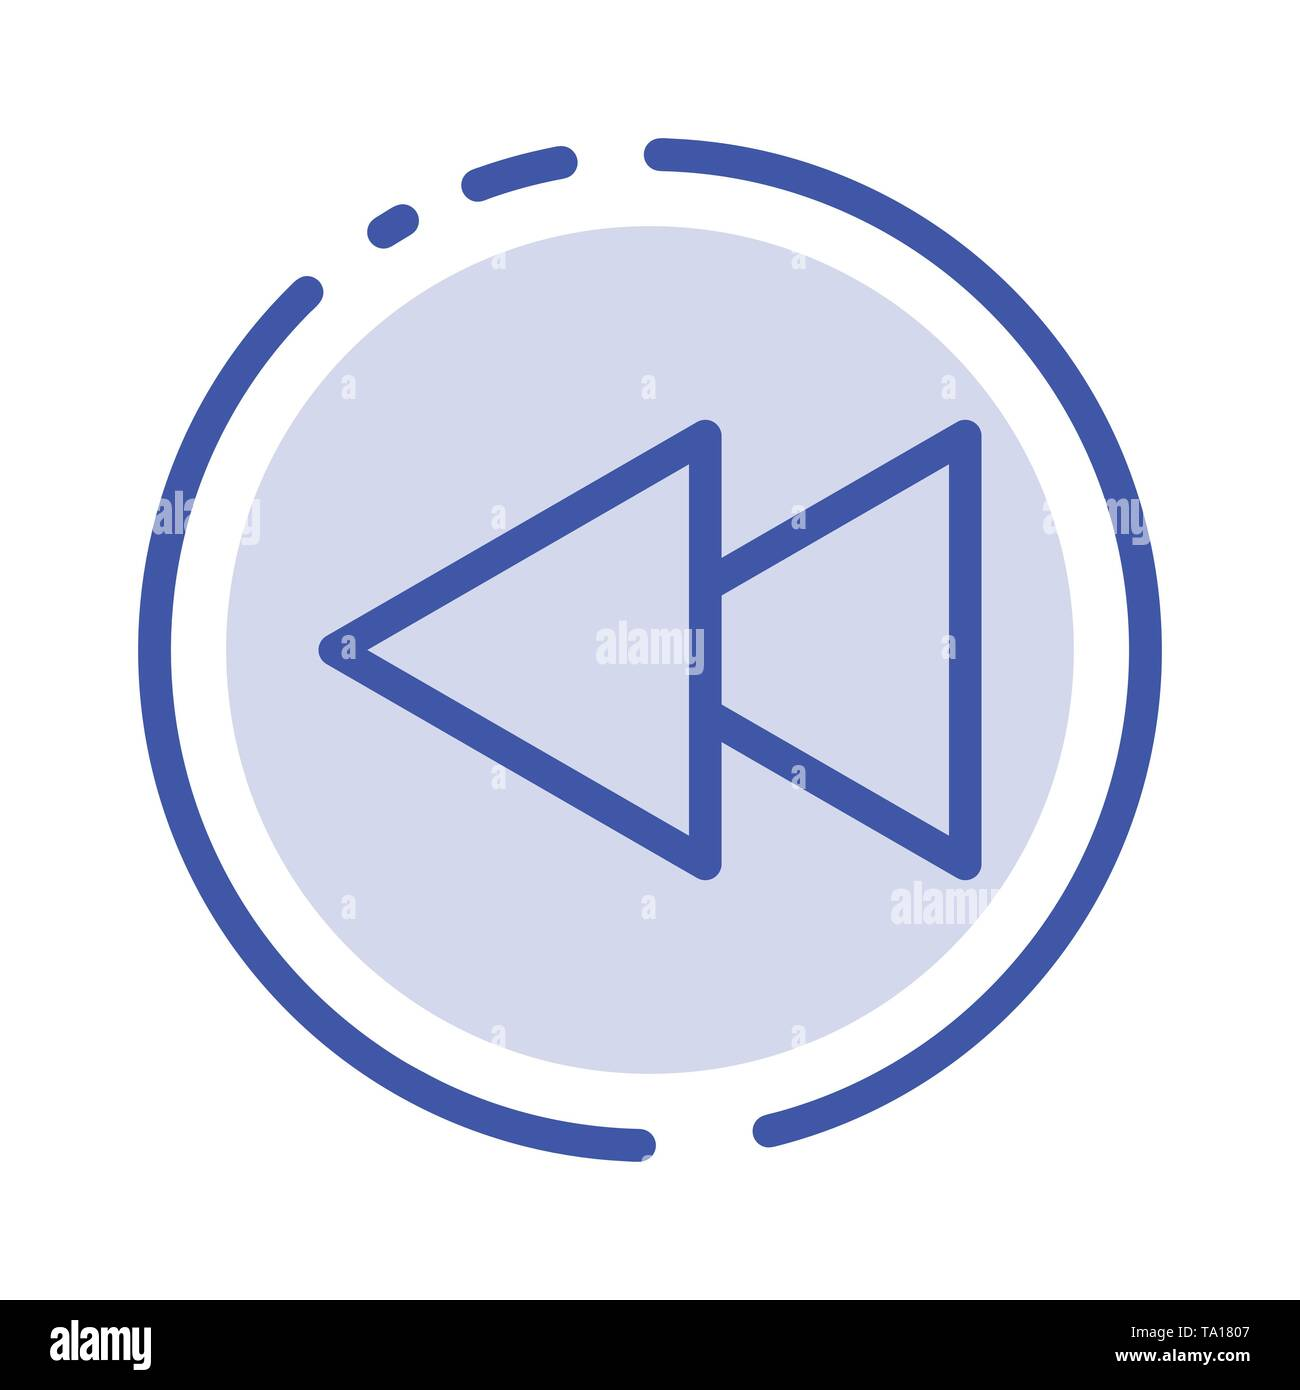 Arrow, Back, Reverse, Rewind Blue Dotted Line Line Icon - Stock Image